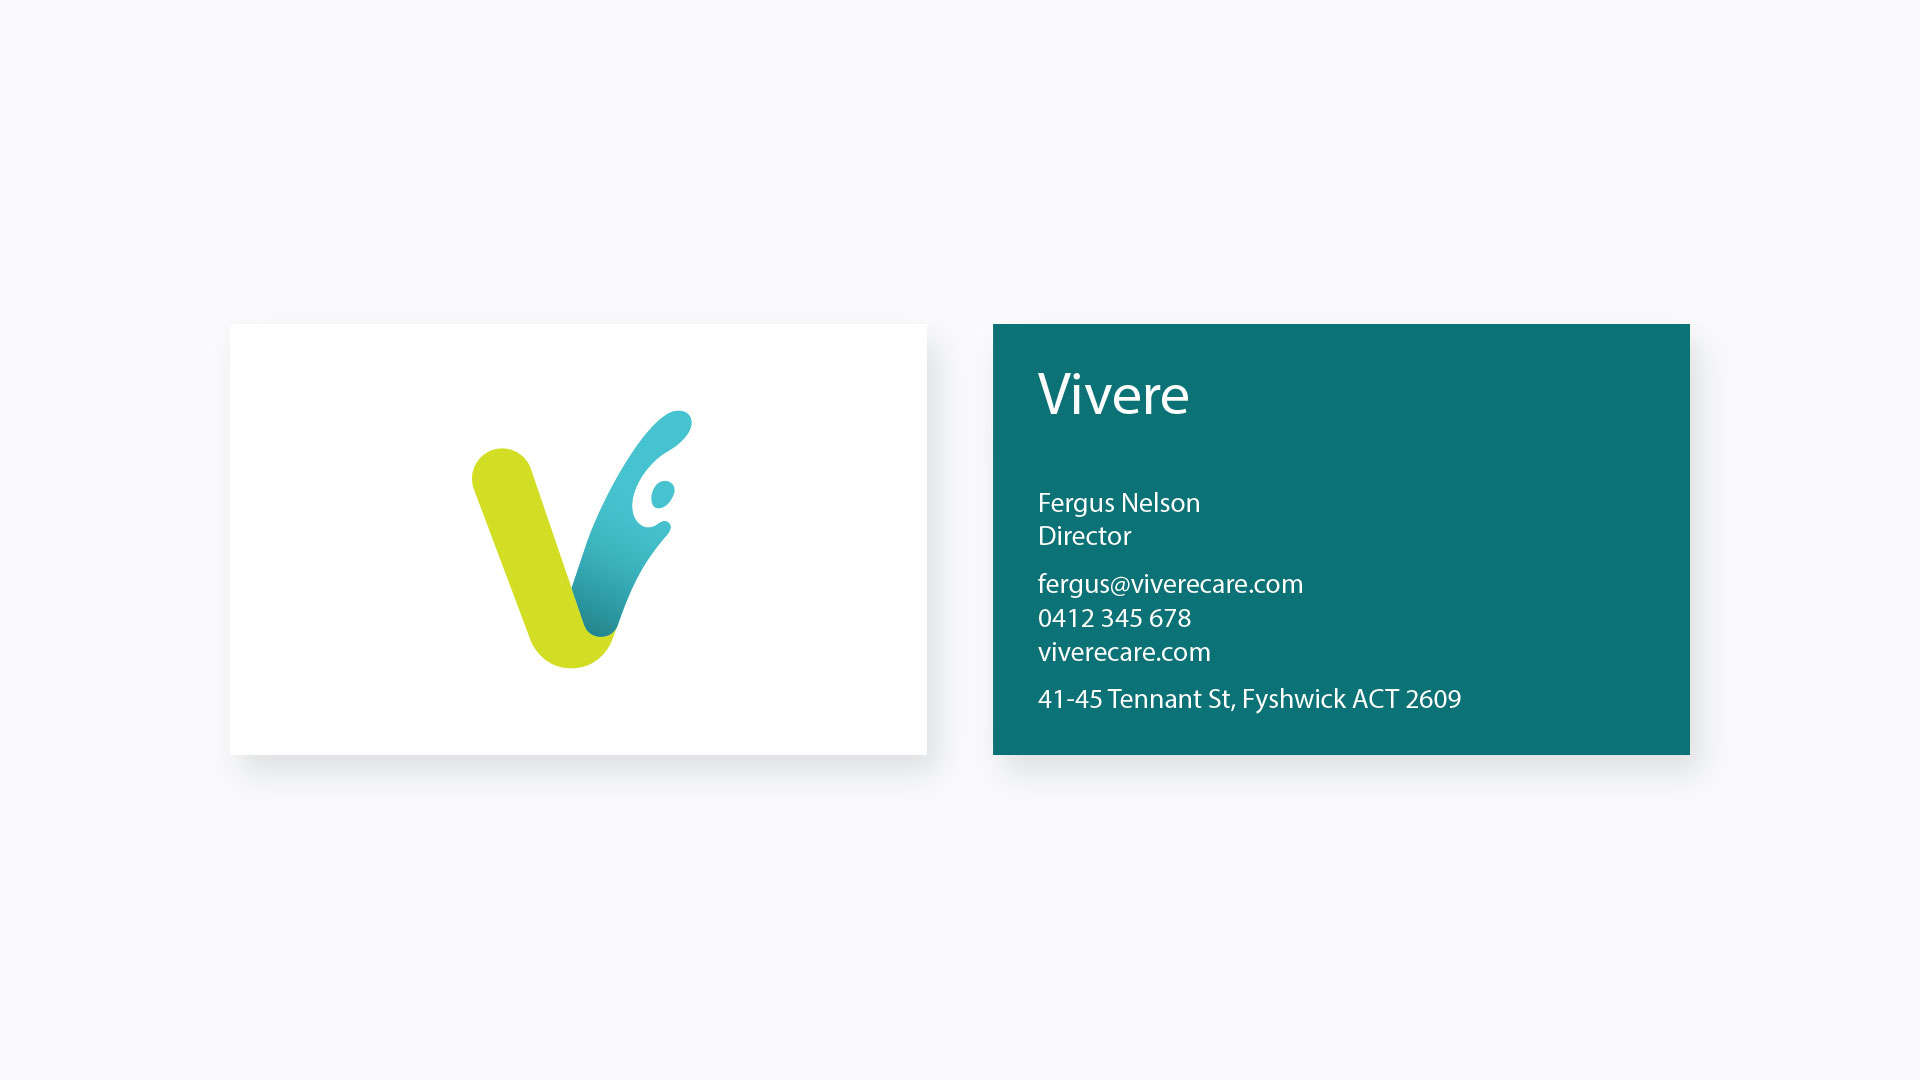 Vivere business card design